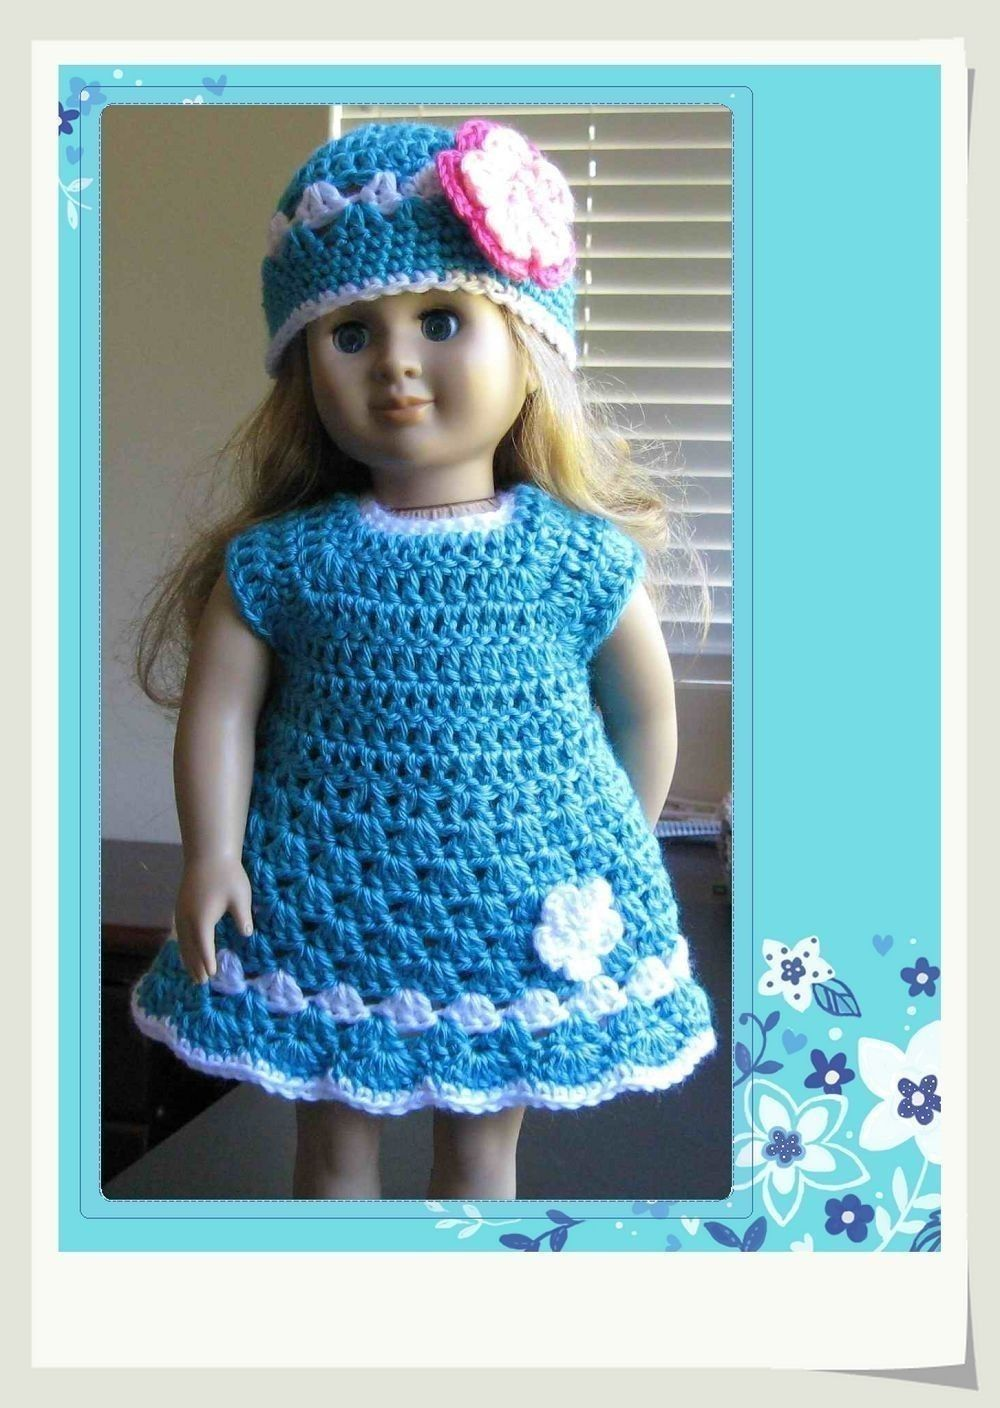 My mommy doll crochet clothes patterns free crocheting doll my mommy doll crochet clothes patterns free crocheting doll clothes crochet for beginners bankloansurffo Choice Image